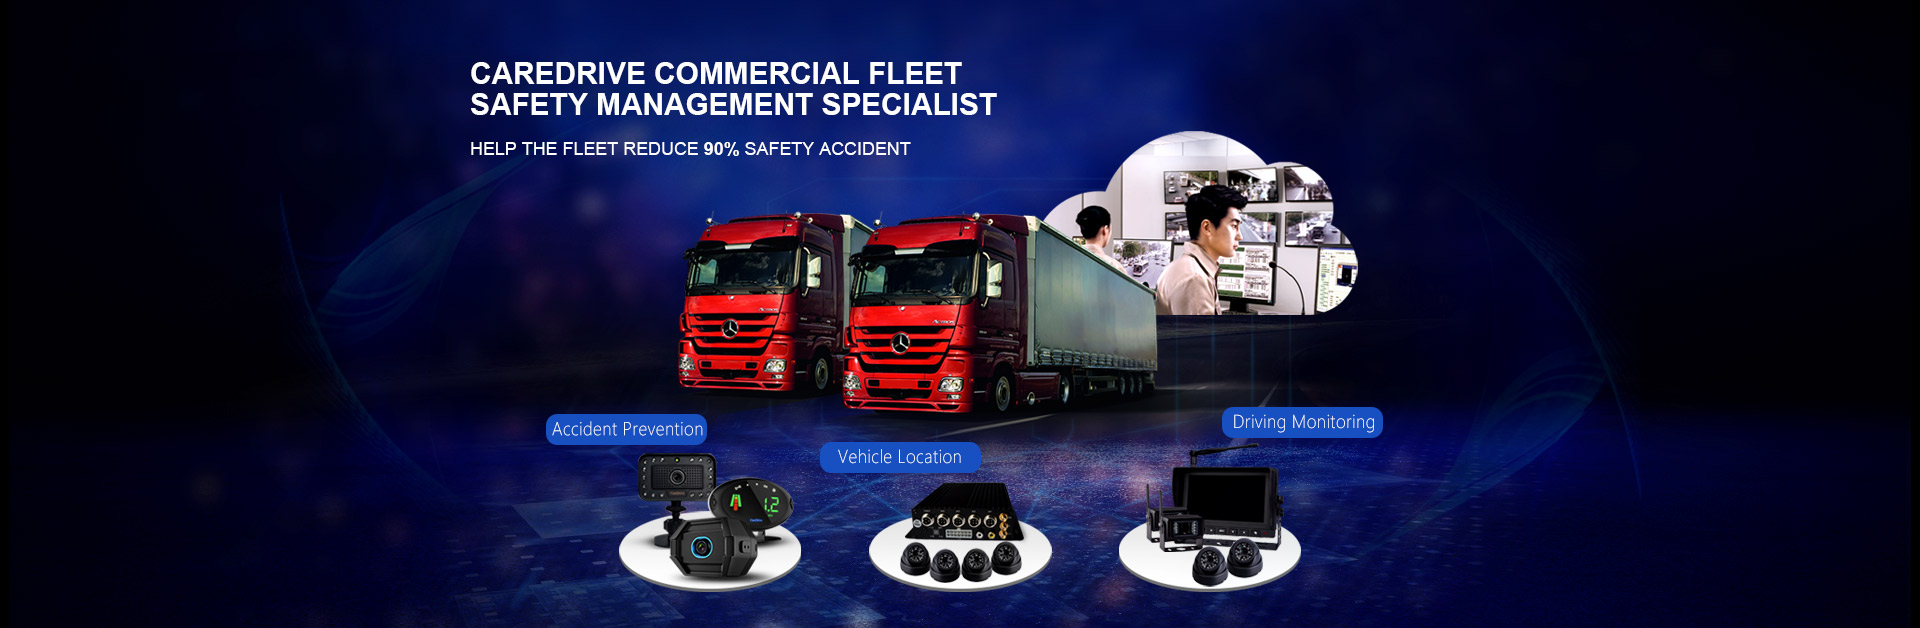 fleet safety solutions